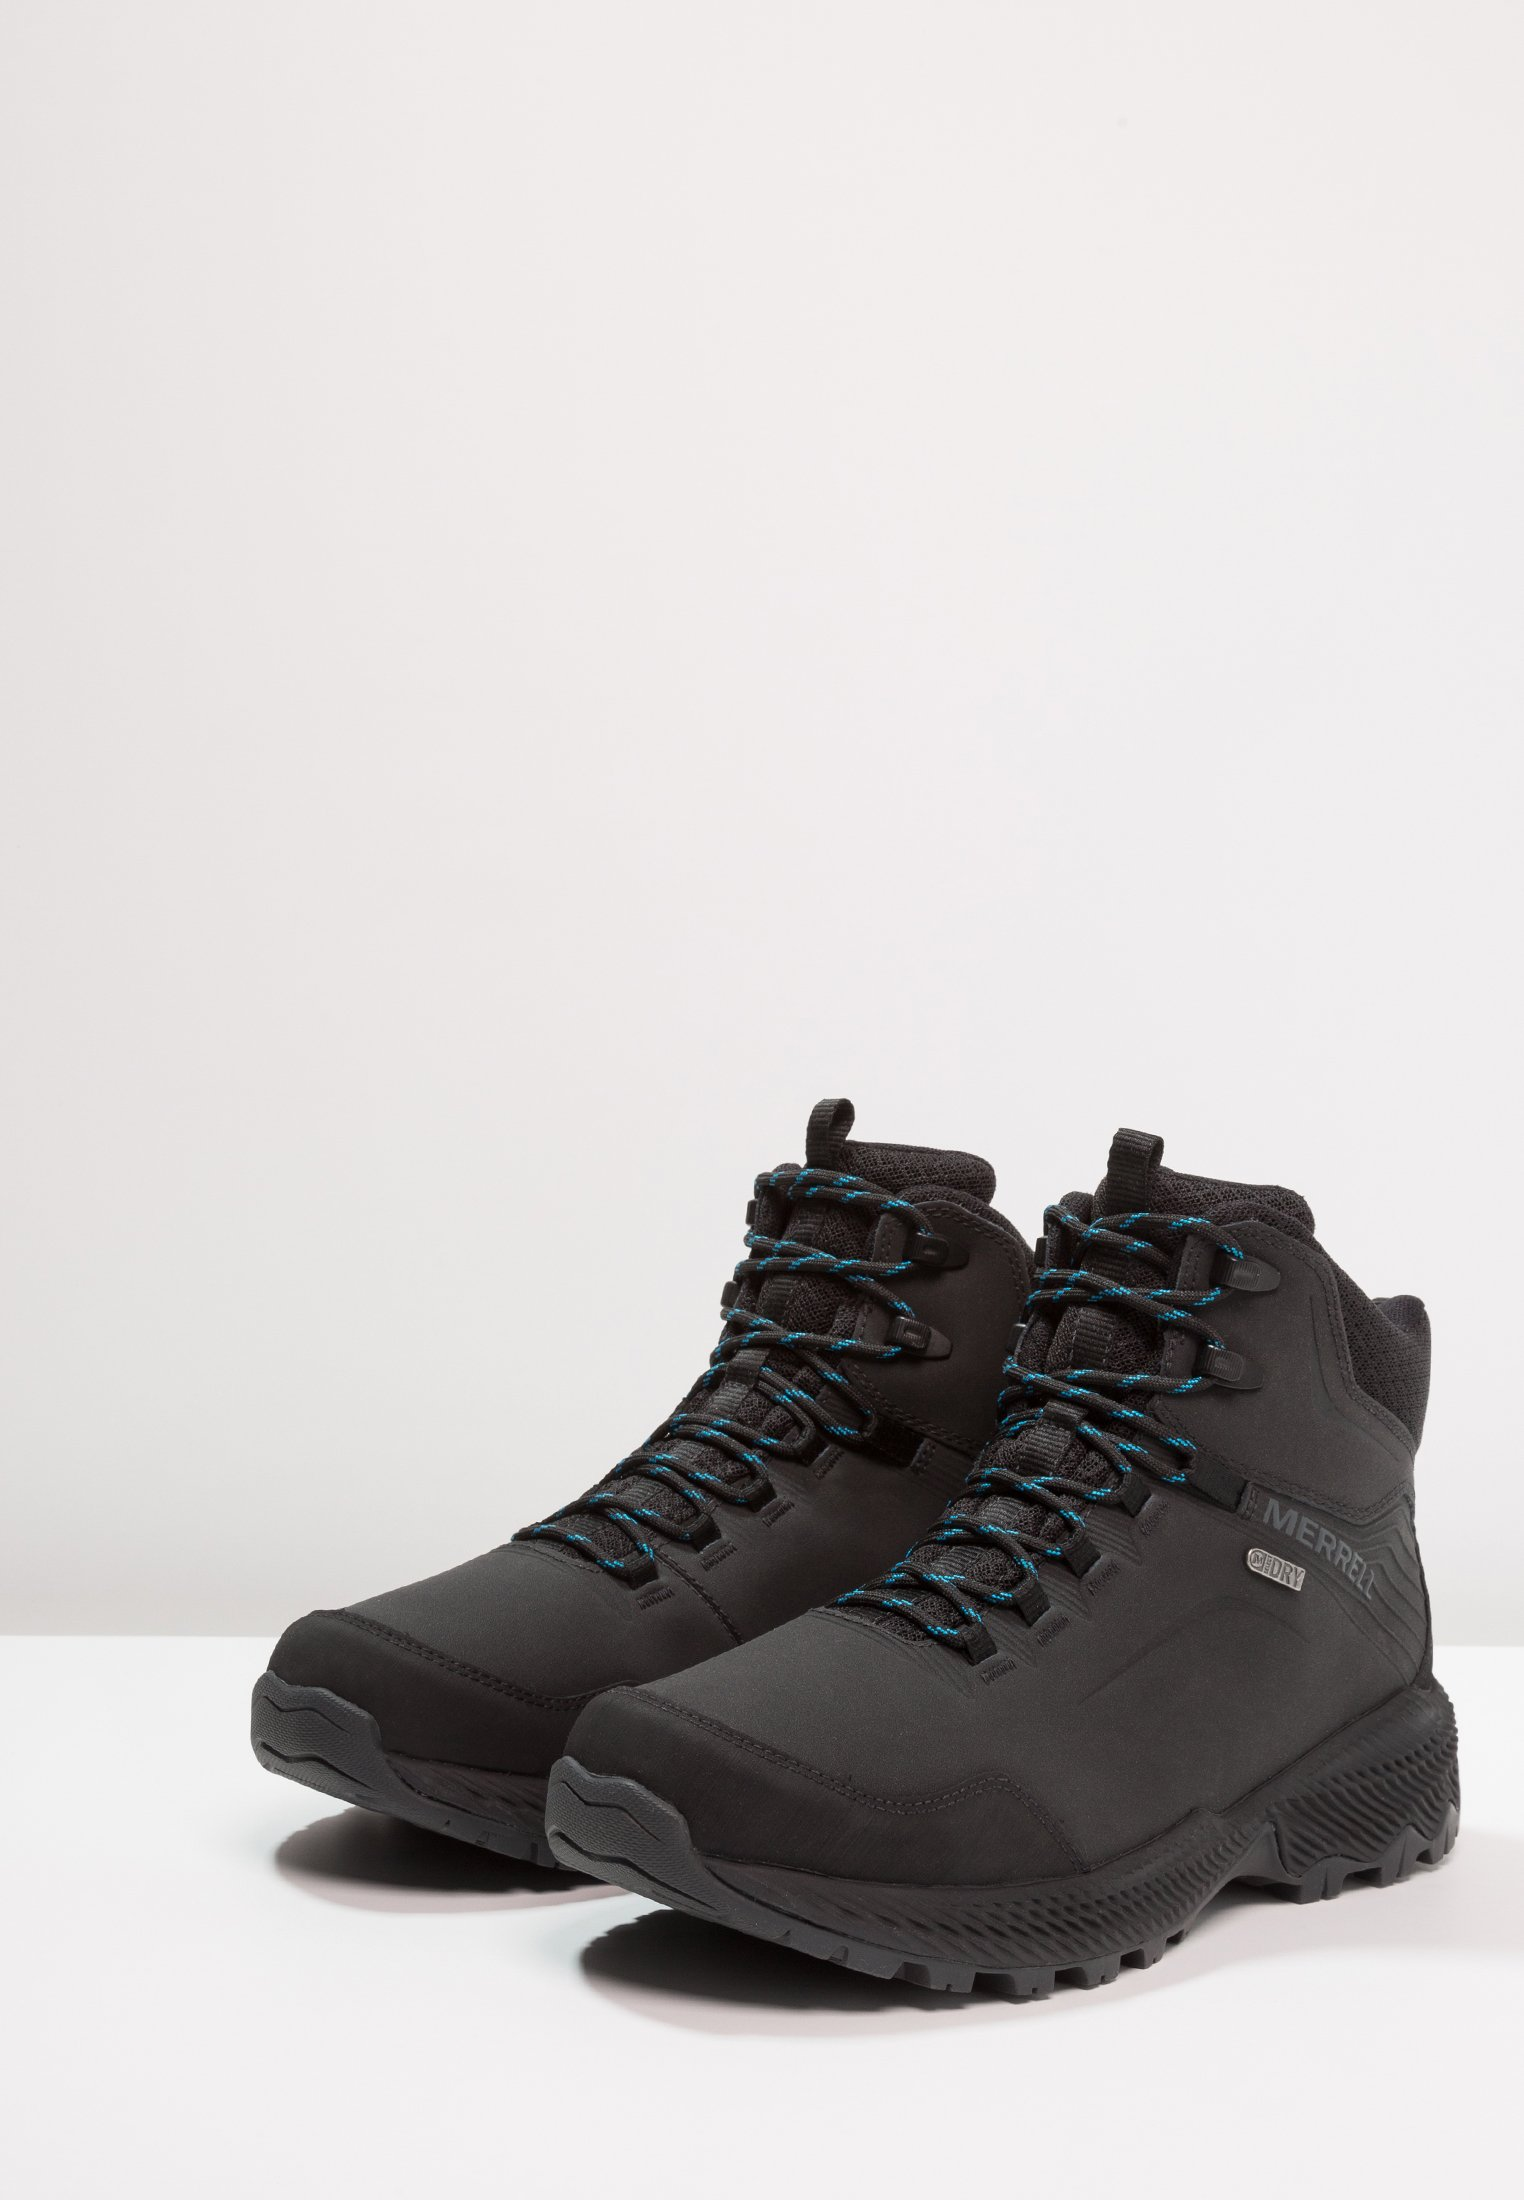 Merrell FORESTBOUND MID WP Hikingschuh black